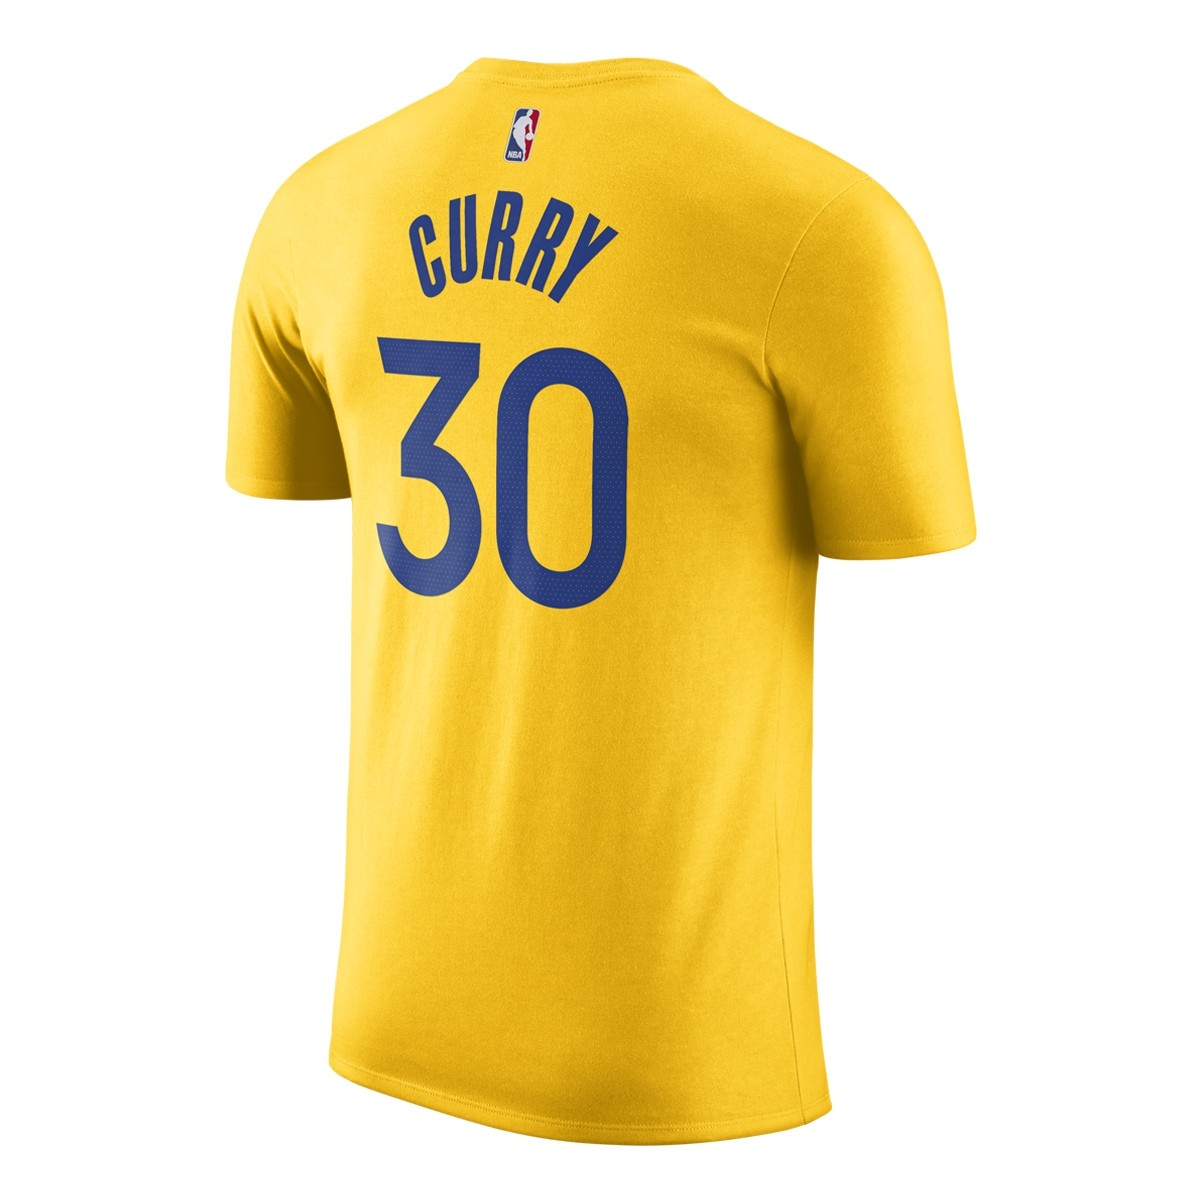 Jordan NBA Golden State Warriors Nick Name Tee Stephen Curry 'Statement Edition'-CV9978-731